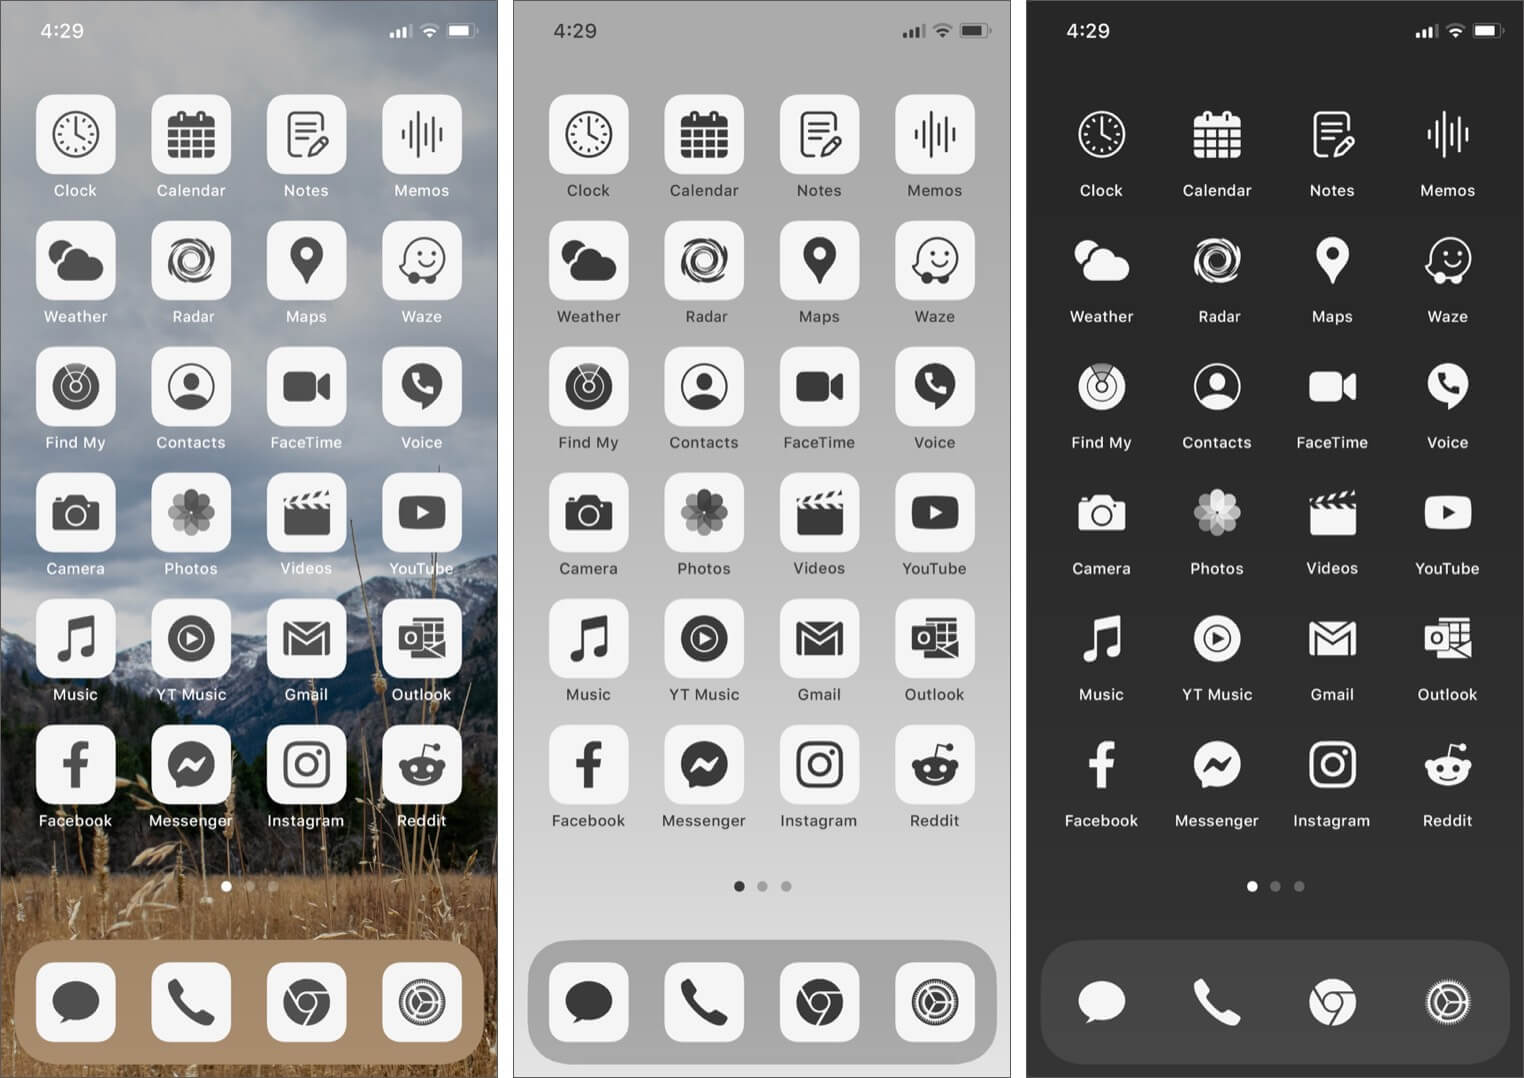 Ruffsnap App Icons Pack for iPhone Running iOS 14